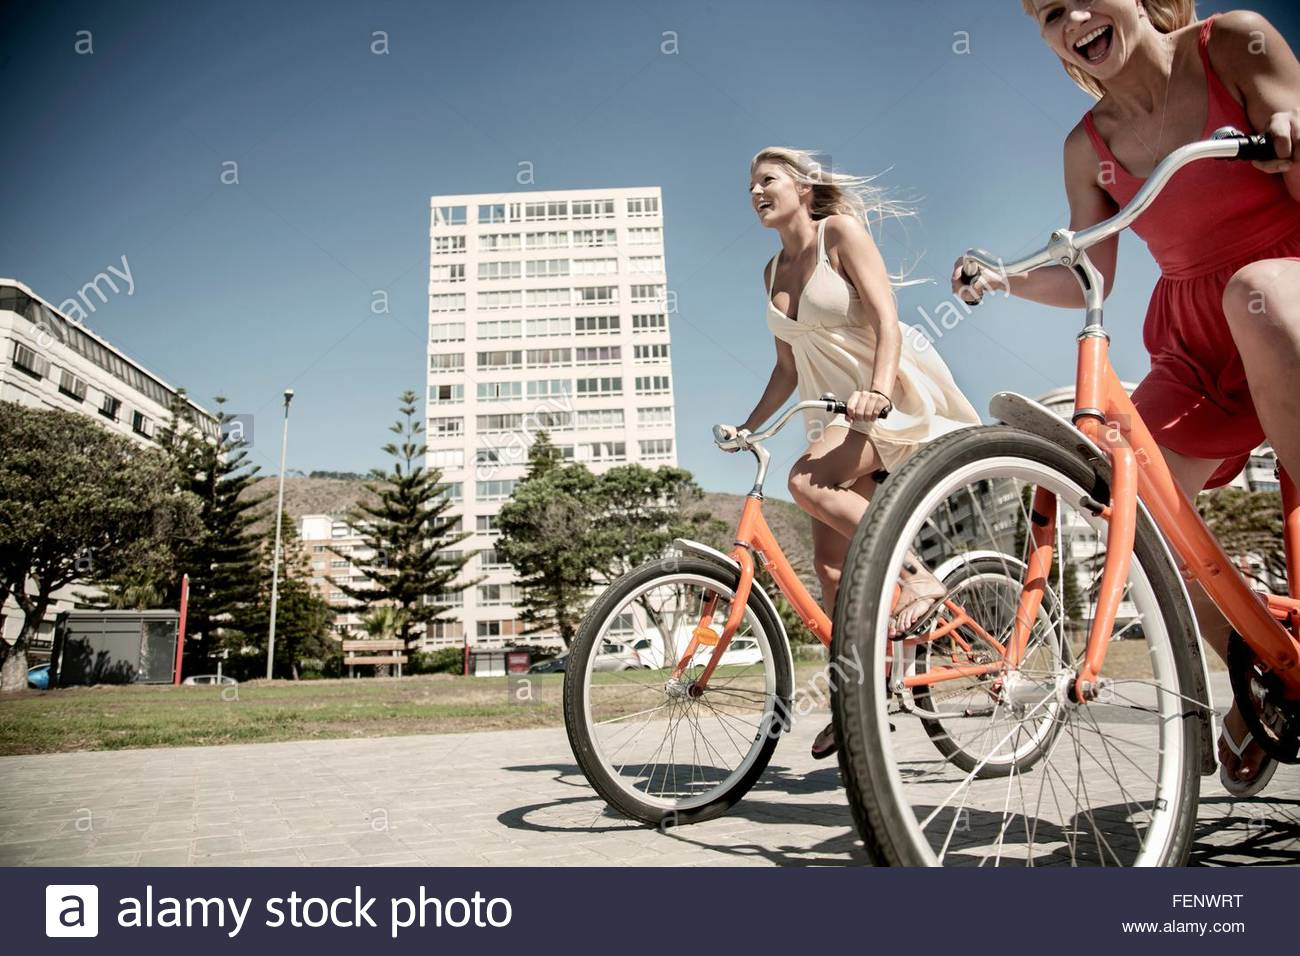 Young women cycling past buildings, Cape Town, South Africa - Stock Image